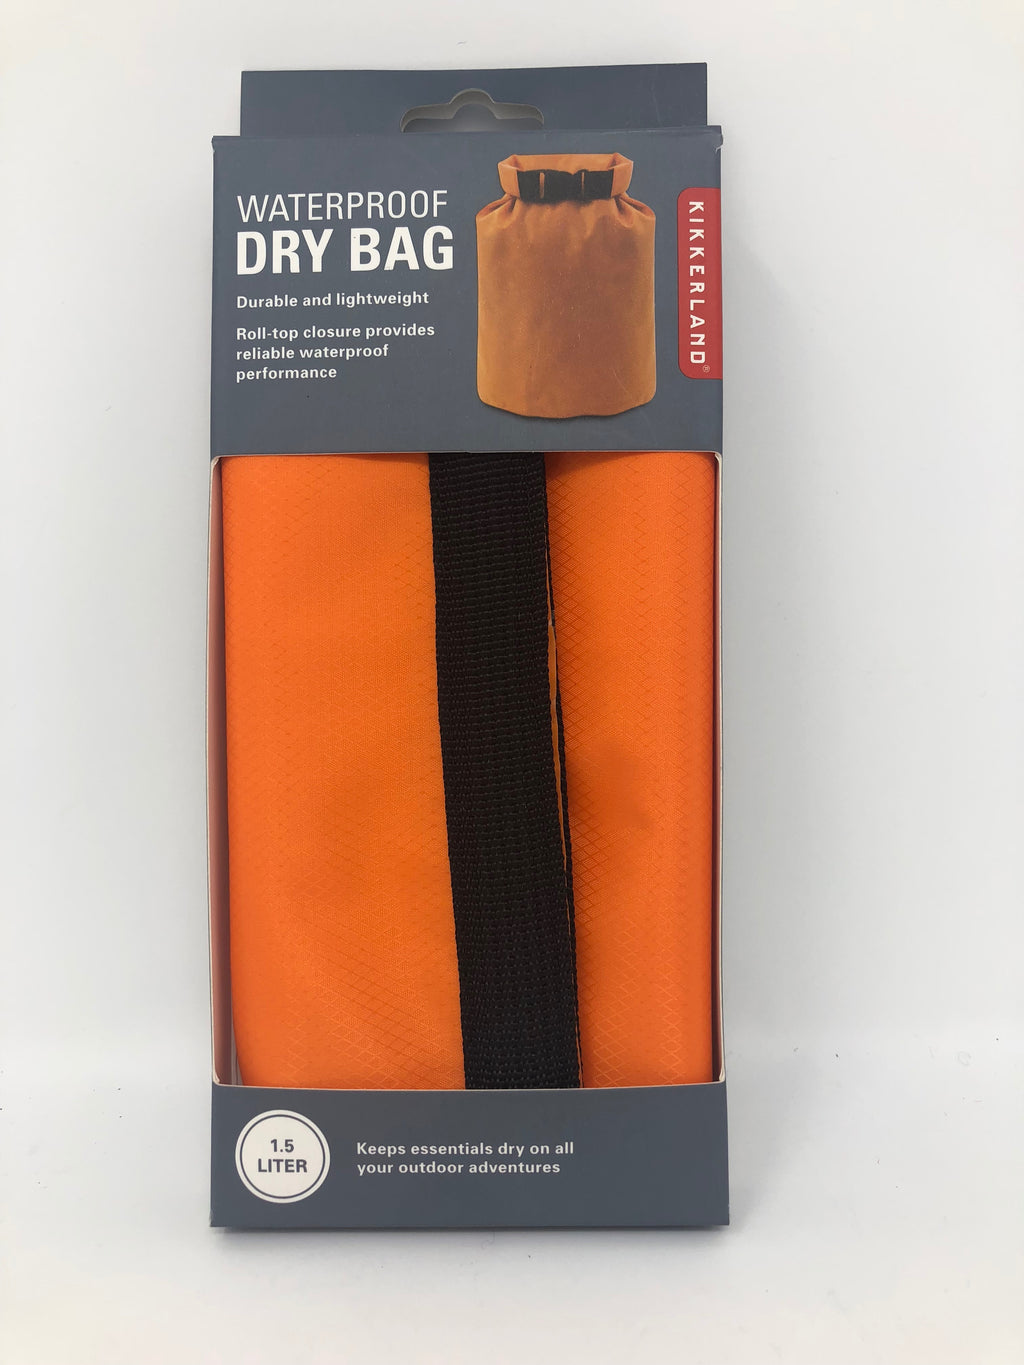 Waterproof Orange Dry Bag (1.5 liter)